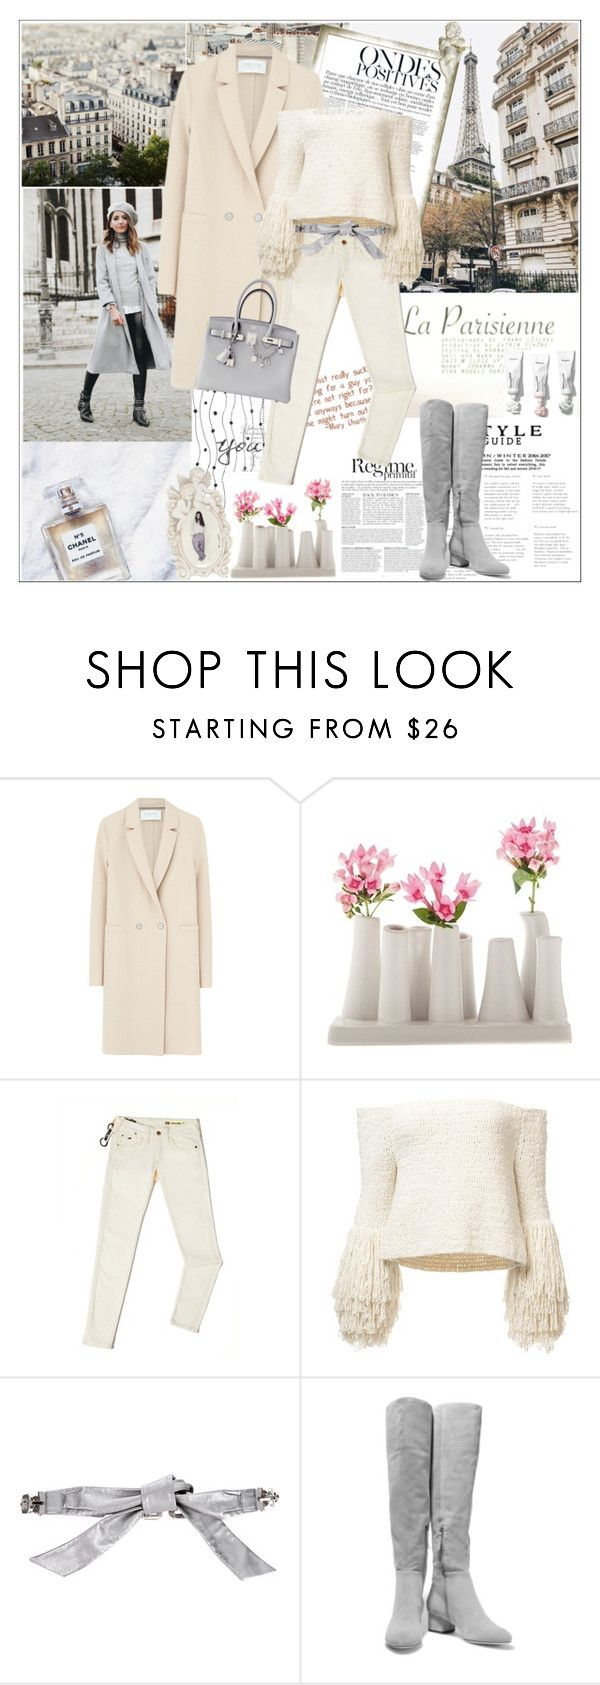 """Sans titre #1683"" by ladybird-fb ❤ liked on Polyvore featuring Chanel, Anja, Harris Wharf London, Chive, Tommy Hilfiger, Dolce&Gabbana, Halston Heritage and Hermès"